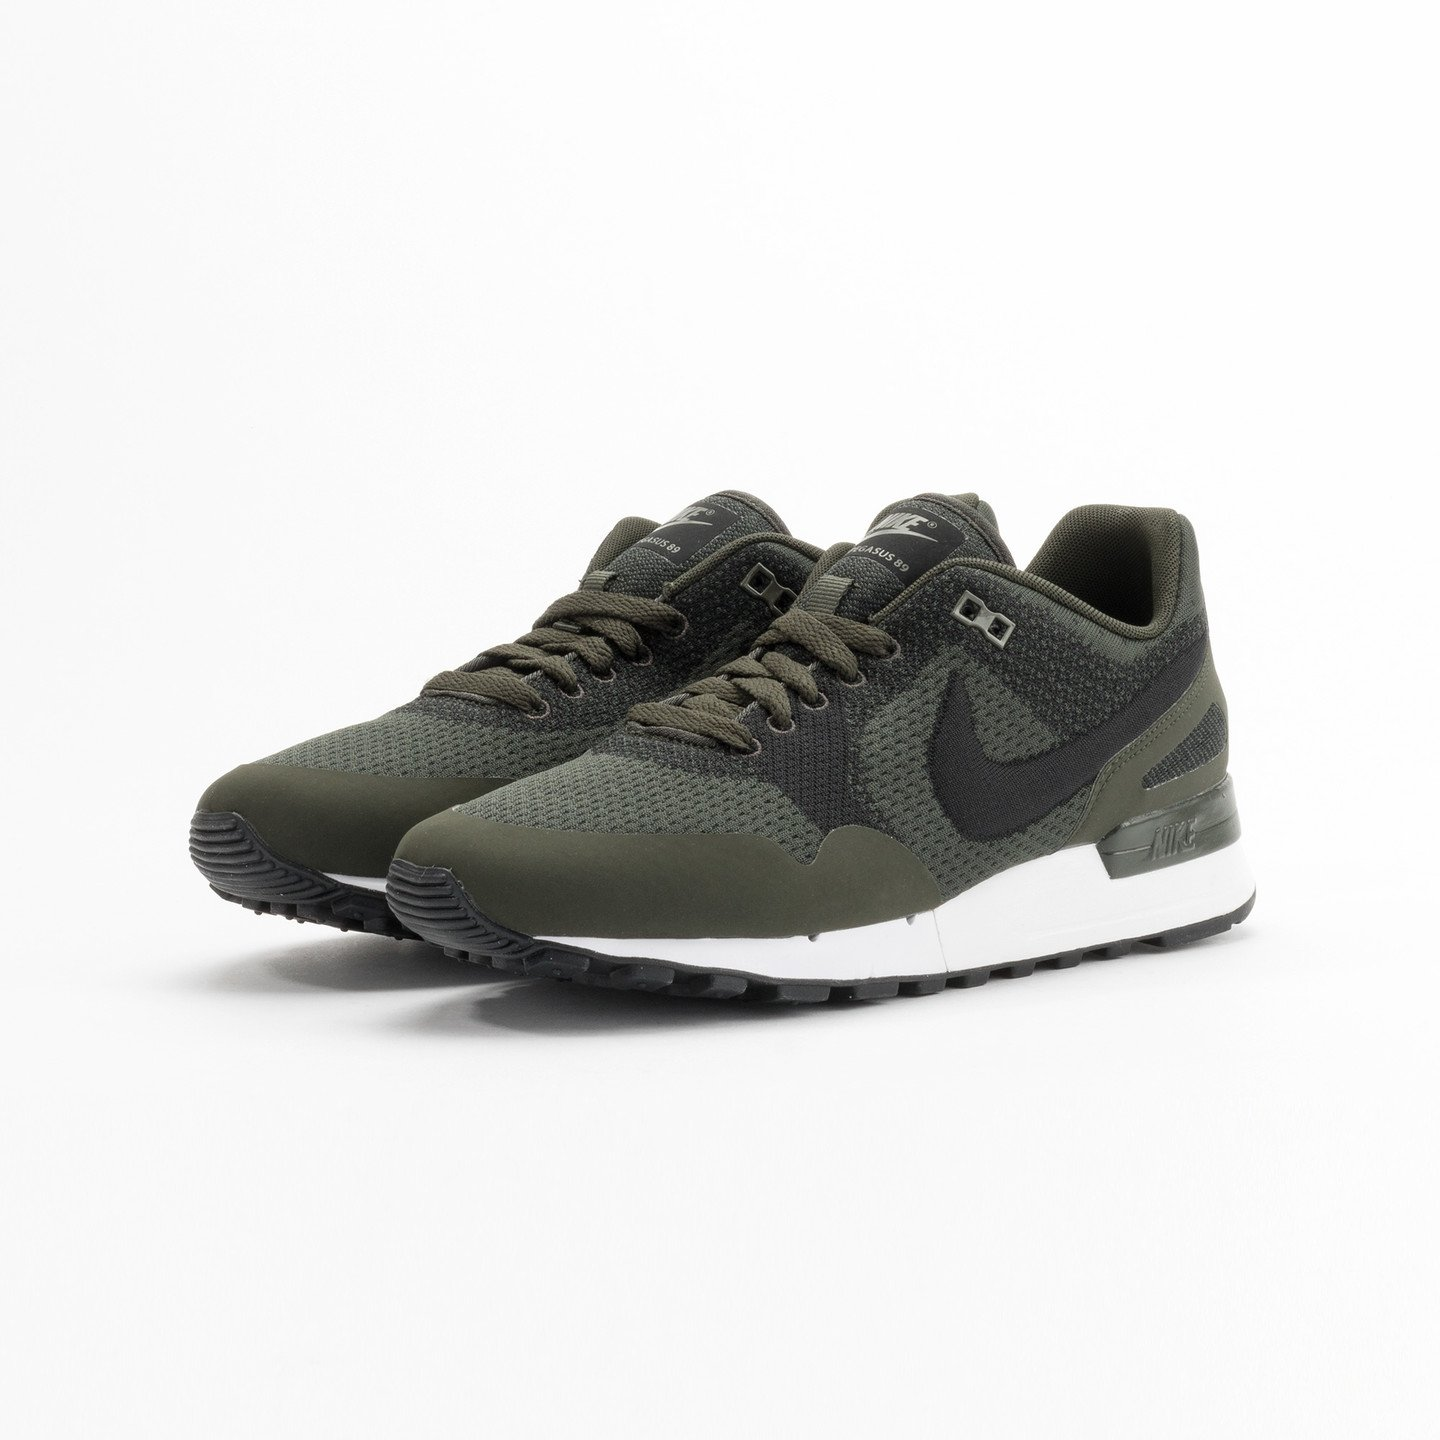 Nike Air Pegasus ´89 Jacquard Sequoia / Black / White 844751-300-45.5